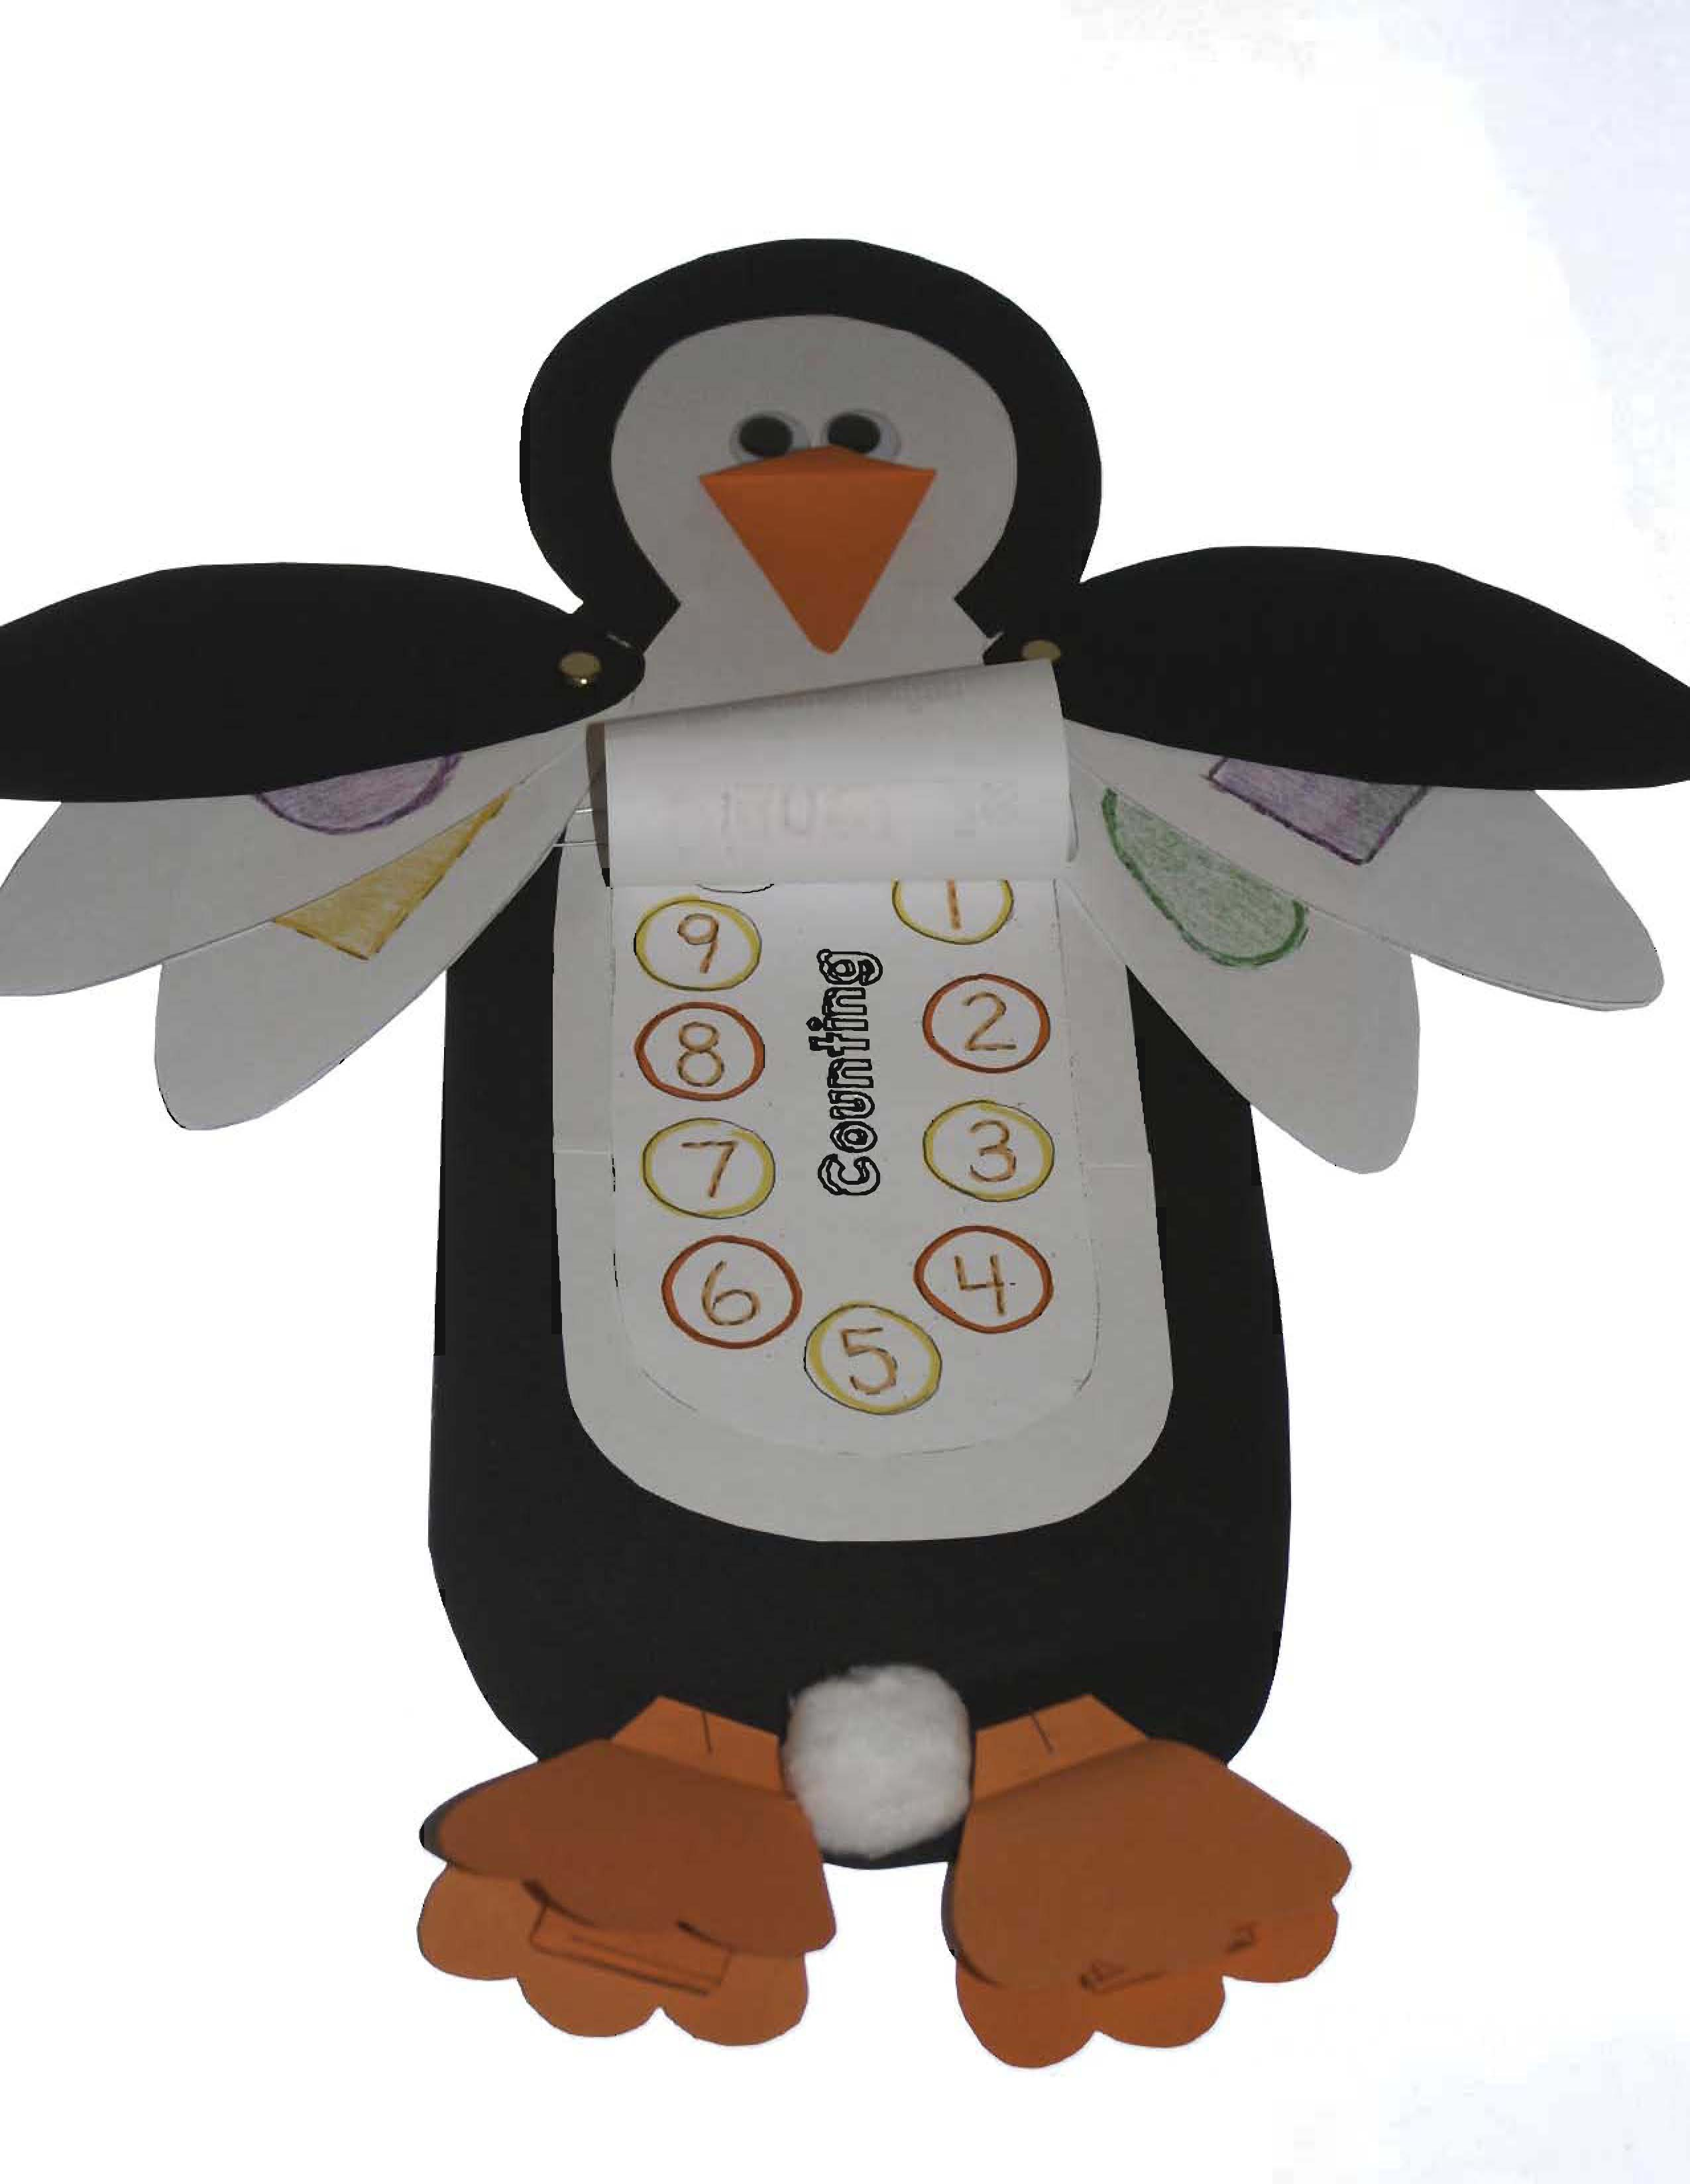 penguin shapes, shapes, penguin booklet, penguin bulletin board ideas, penguin bulletin boards, January bulletin boards, january bulletin board ideas, winter bulletin boards, penguin crafts, penguin activities, penguin centers, shape booklet, shape activities,